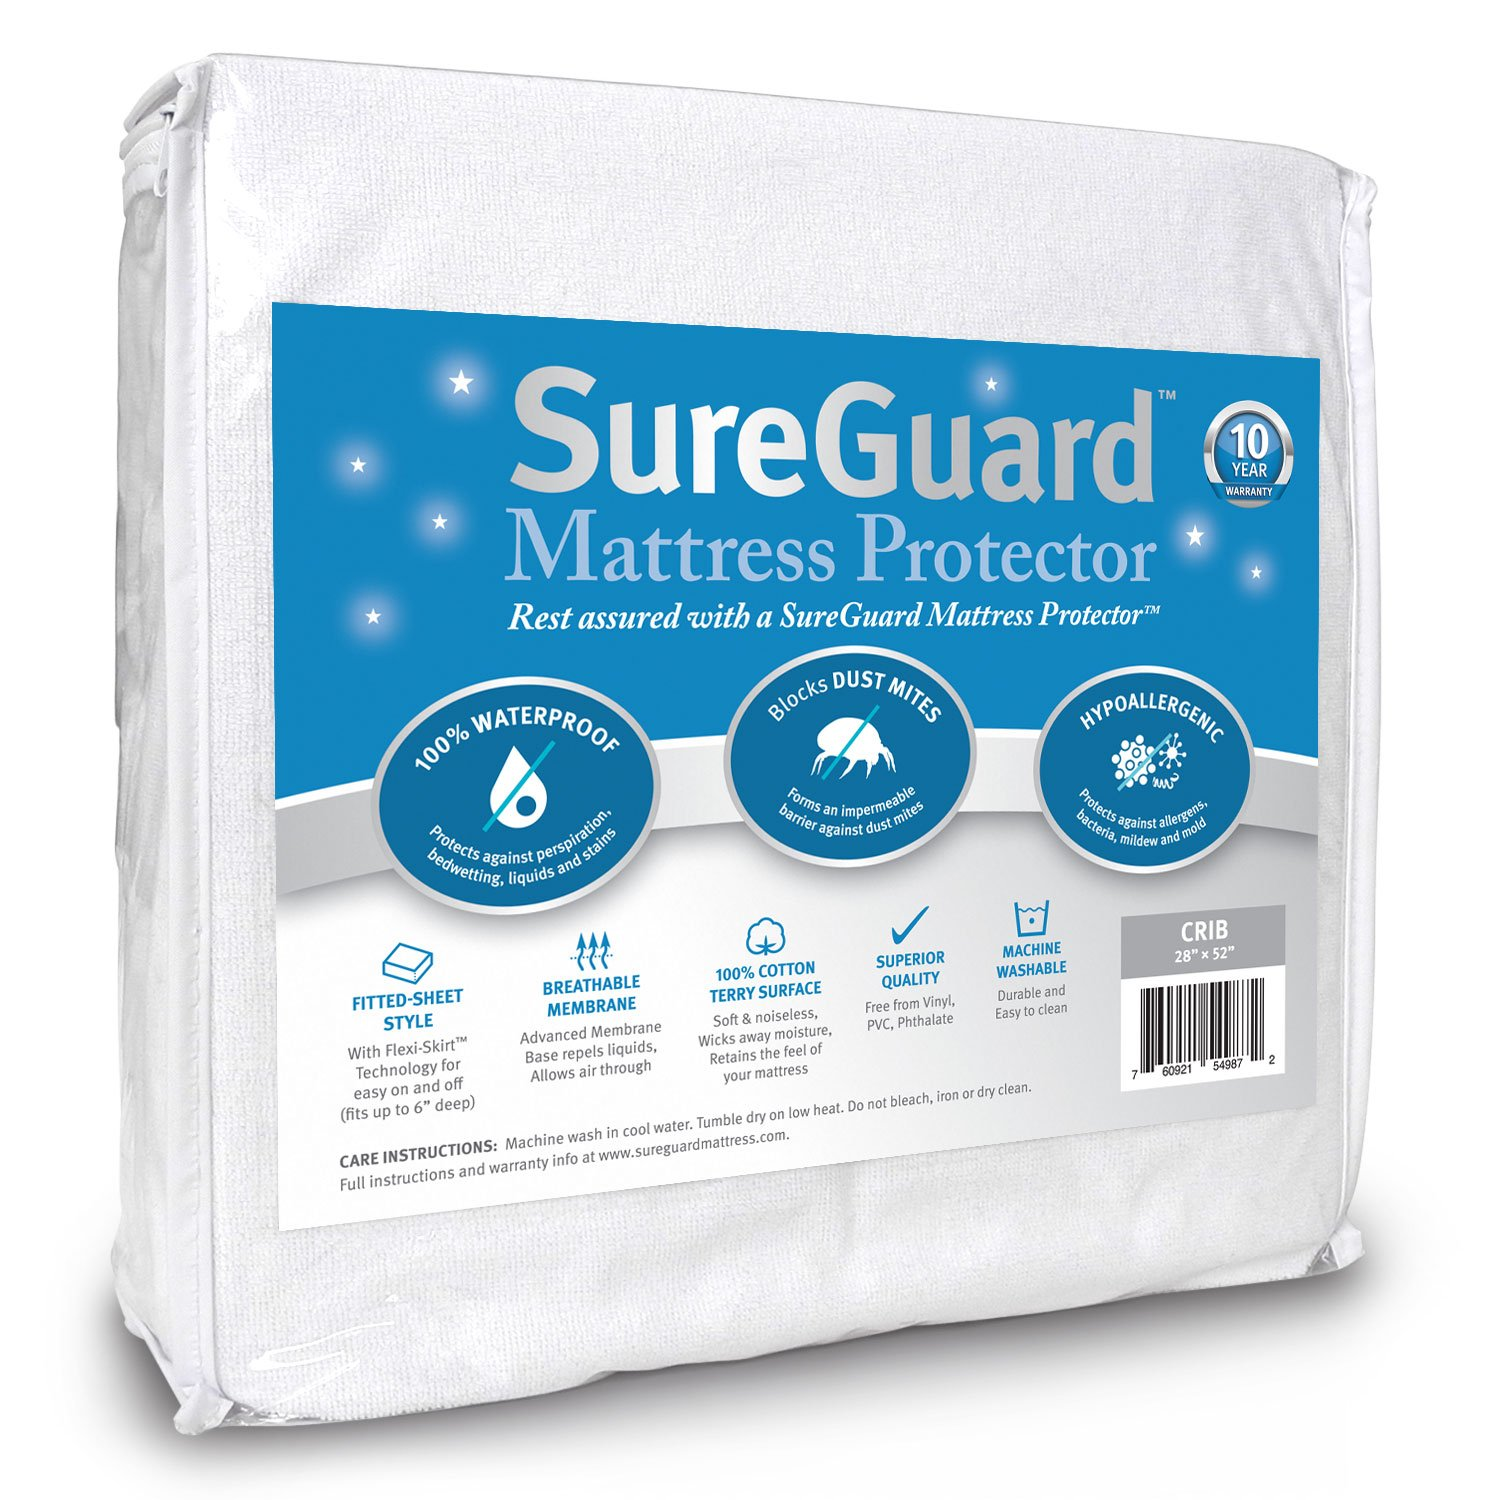 SureGuard Mattress Protectors Crib Size 100% Waterproof, Hypoallergenic - Premium Fitted Cotton Terry Cover - 10 Year Warranty by SureGuard Mattress Protectors